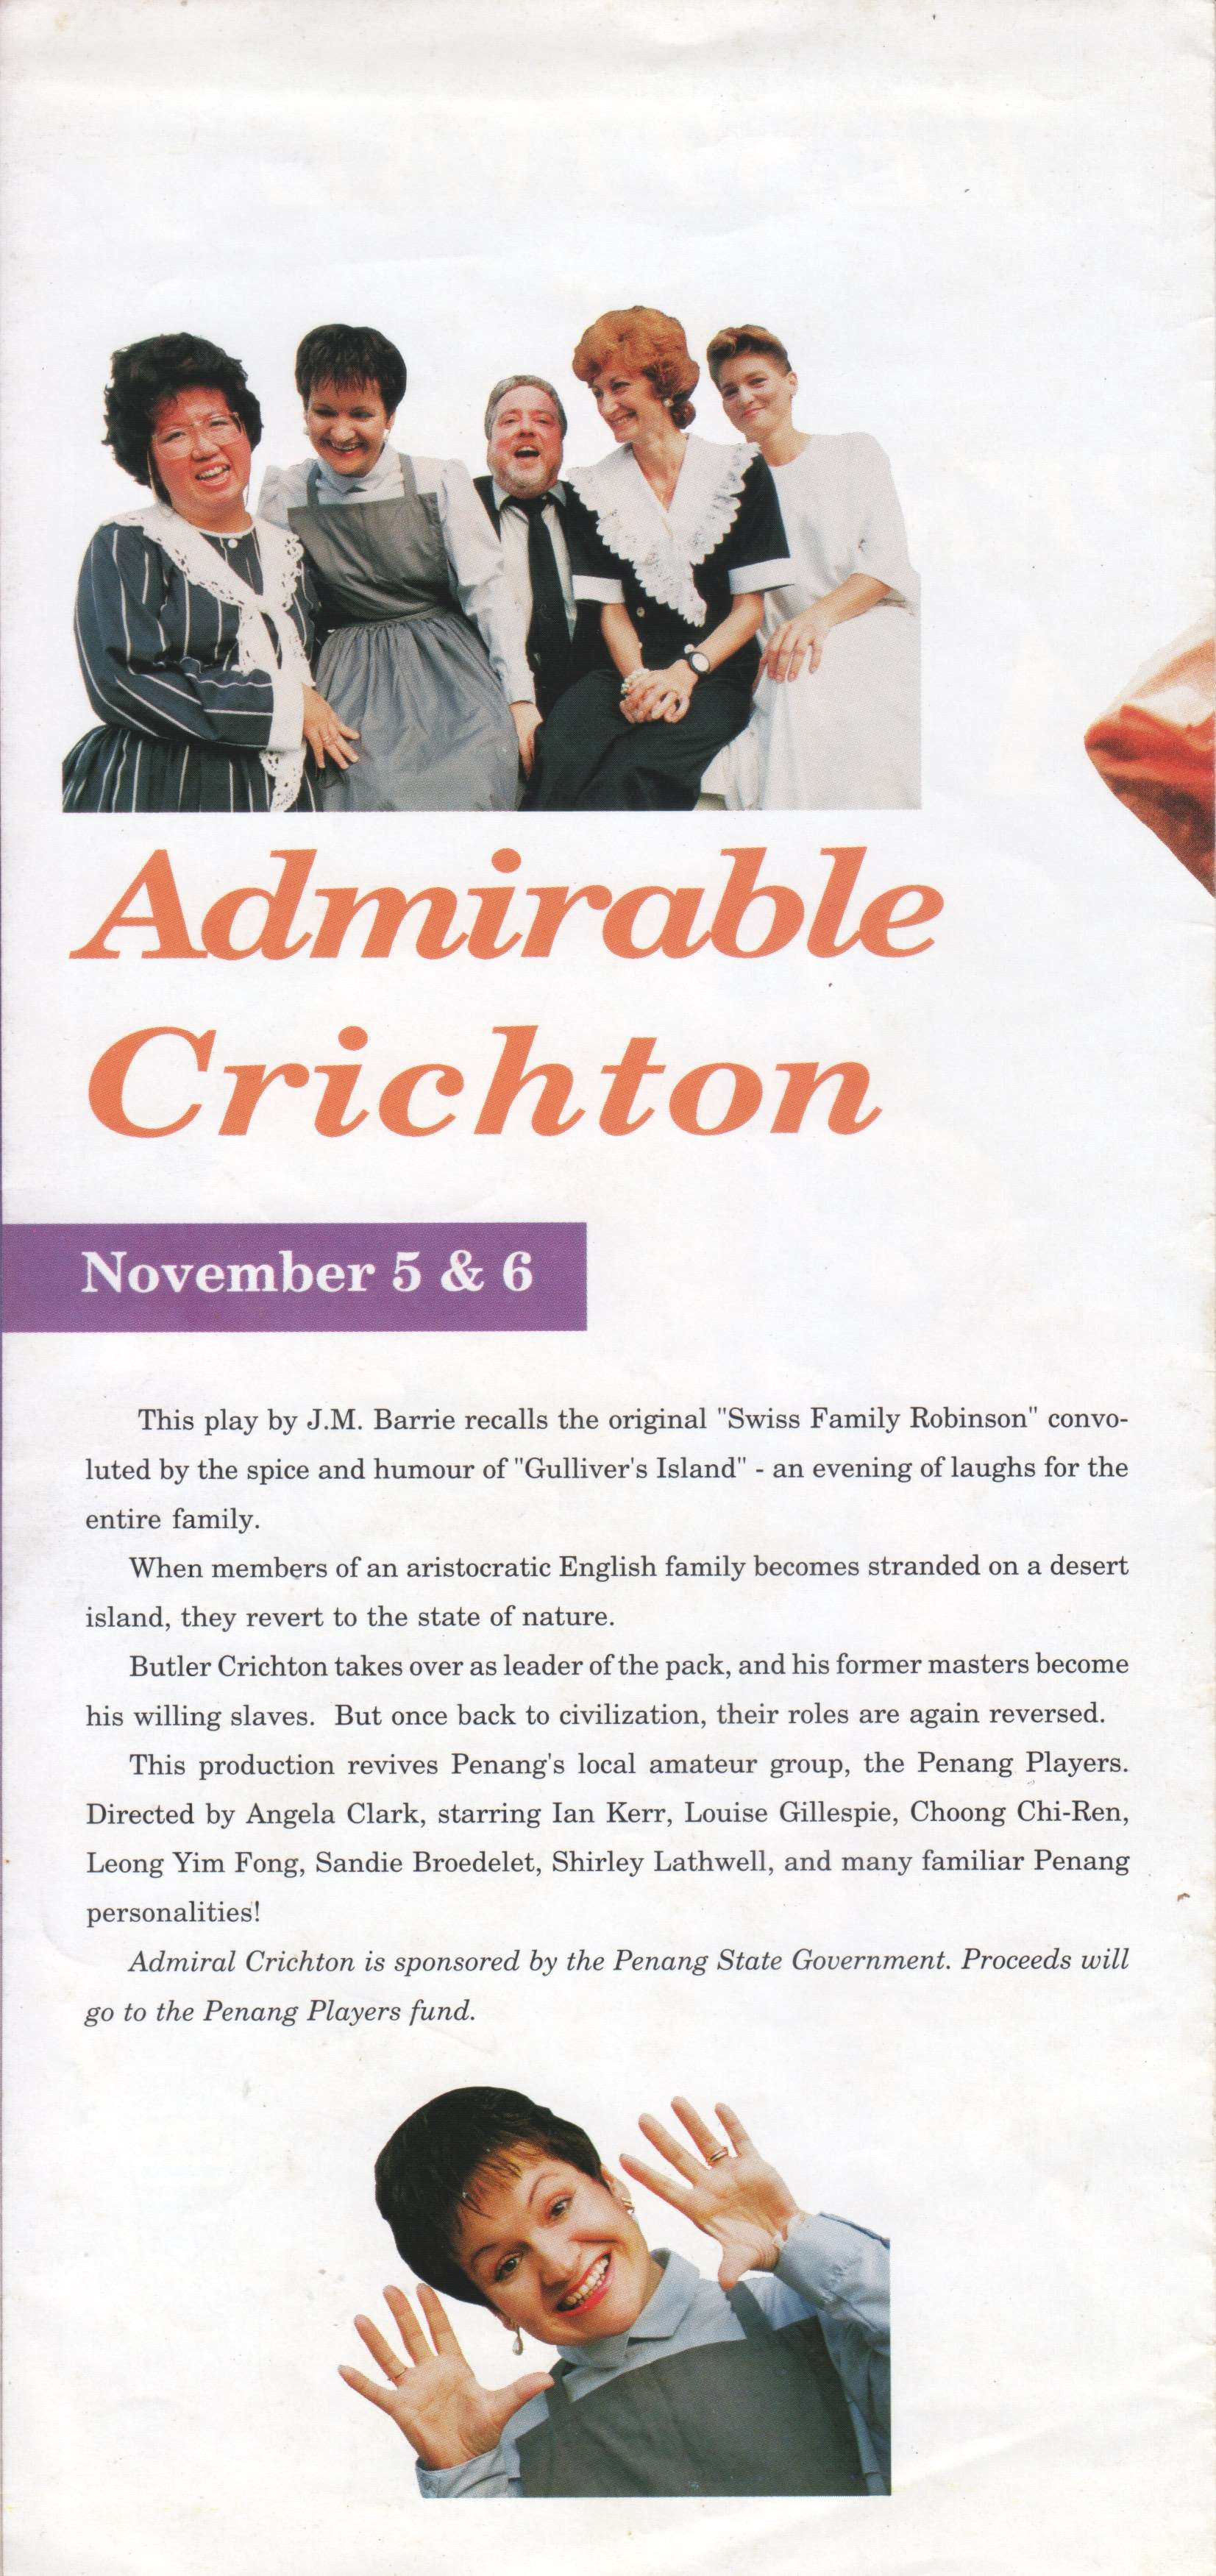 Admirable Crichton Flyer